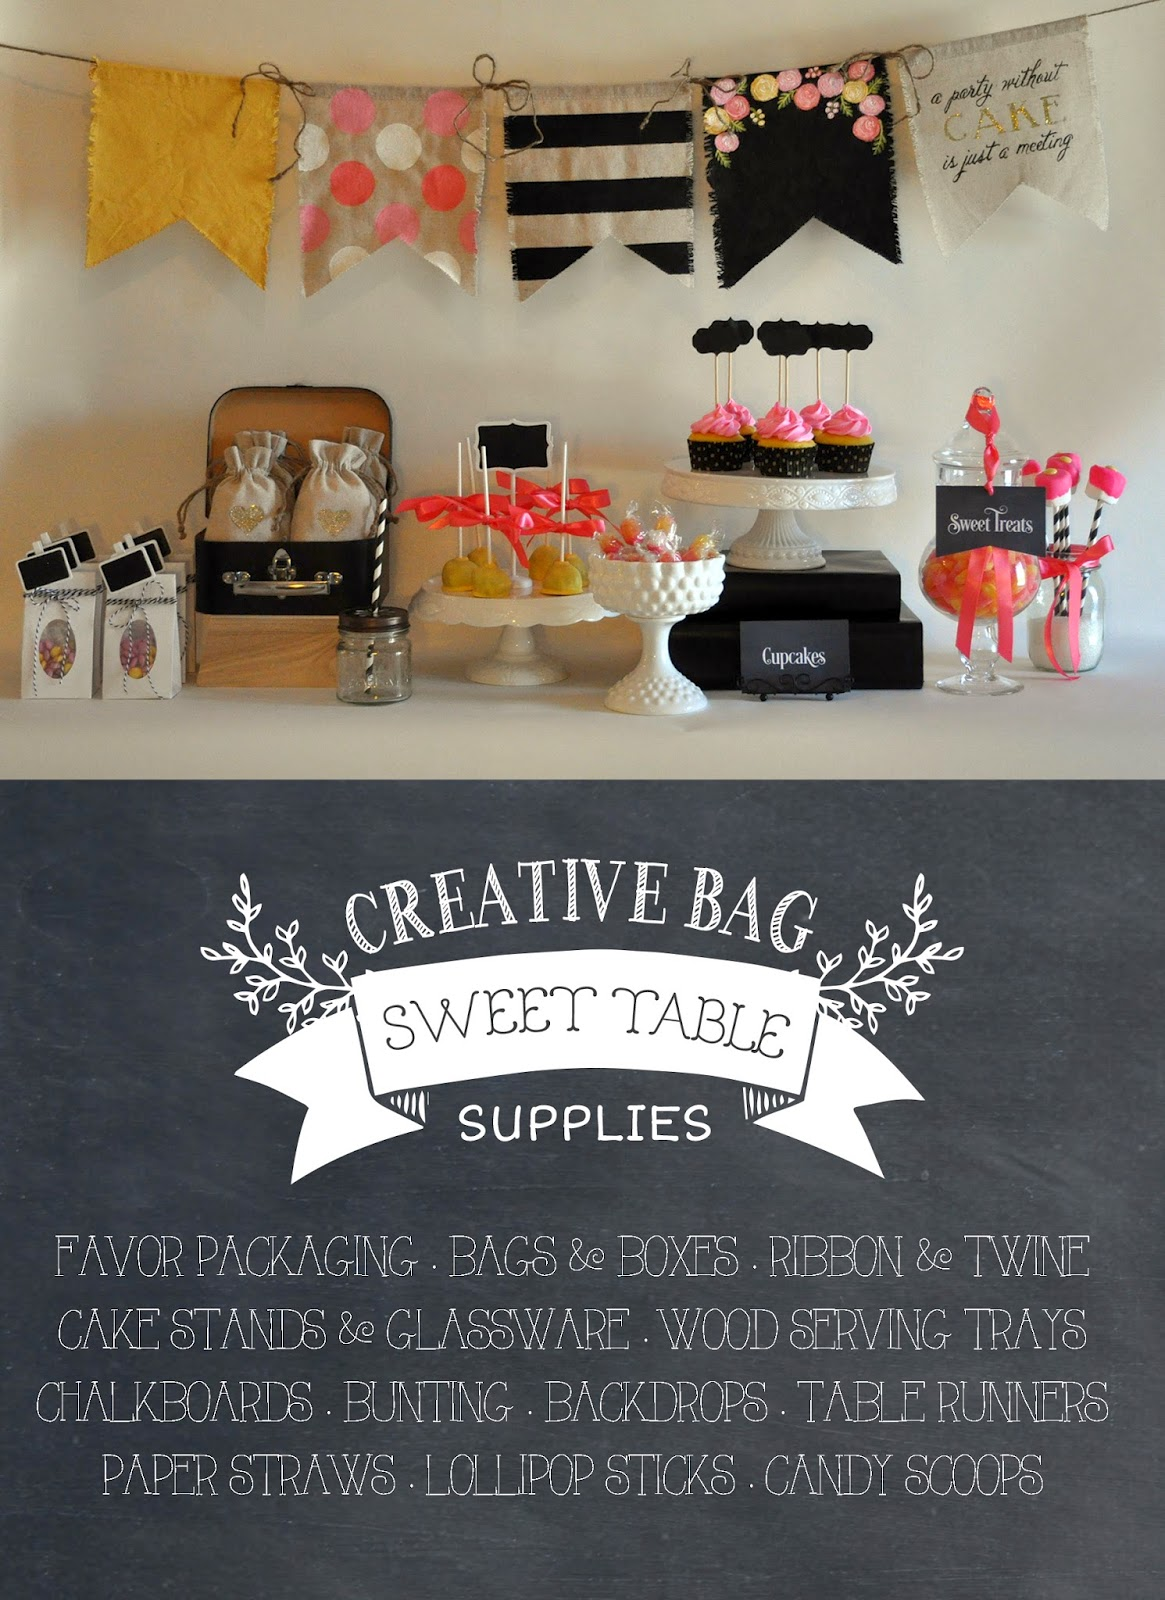 Fabulous diy sweet table supplies for parties, weddings and special events | creativebag.com